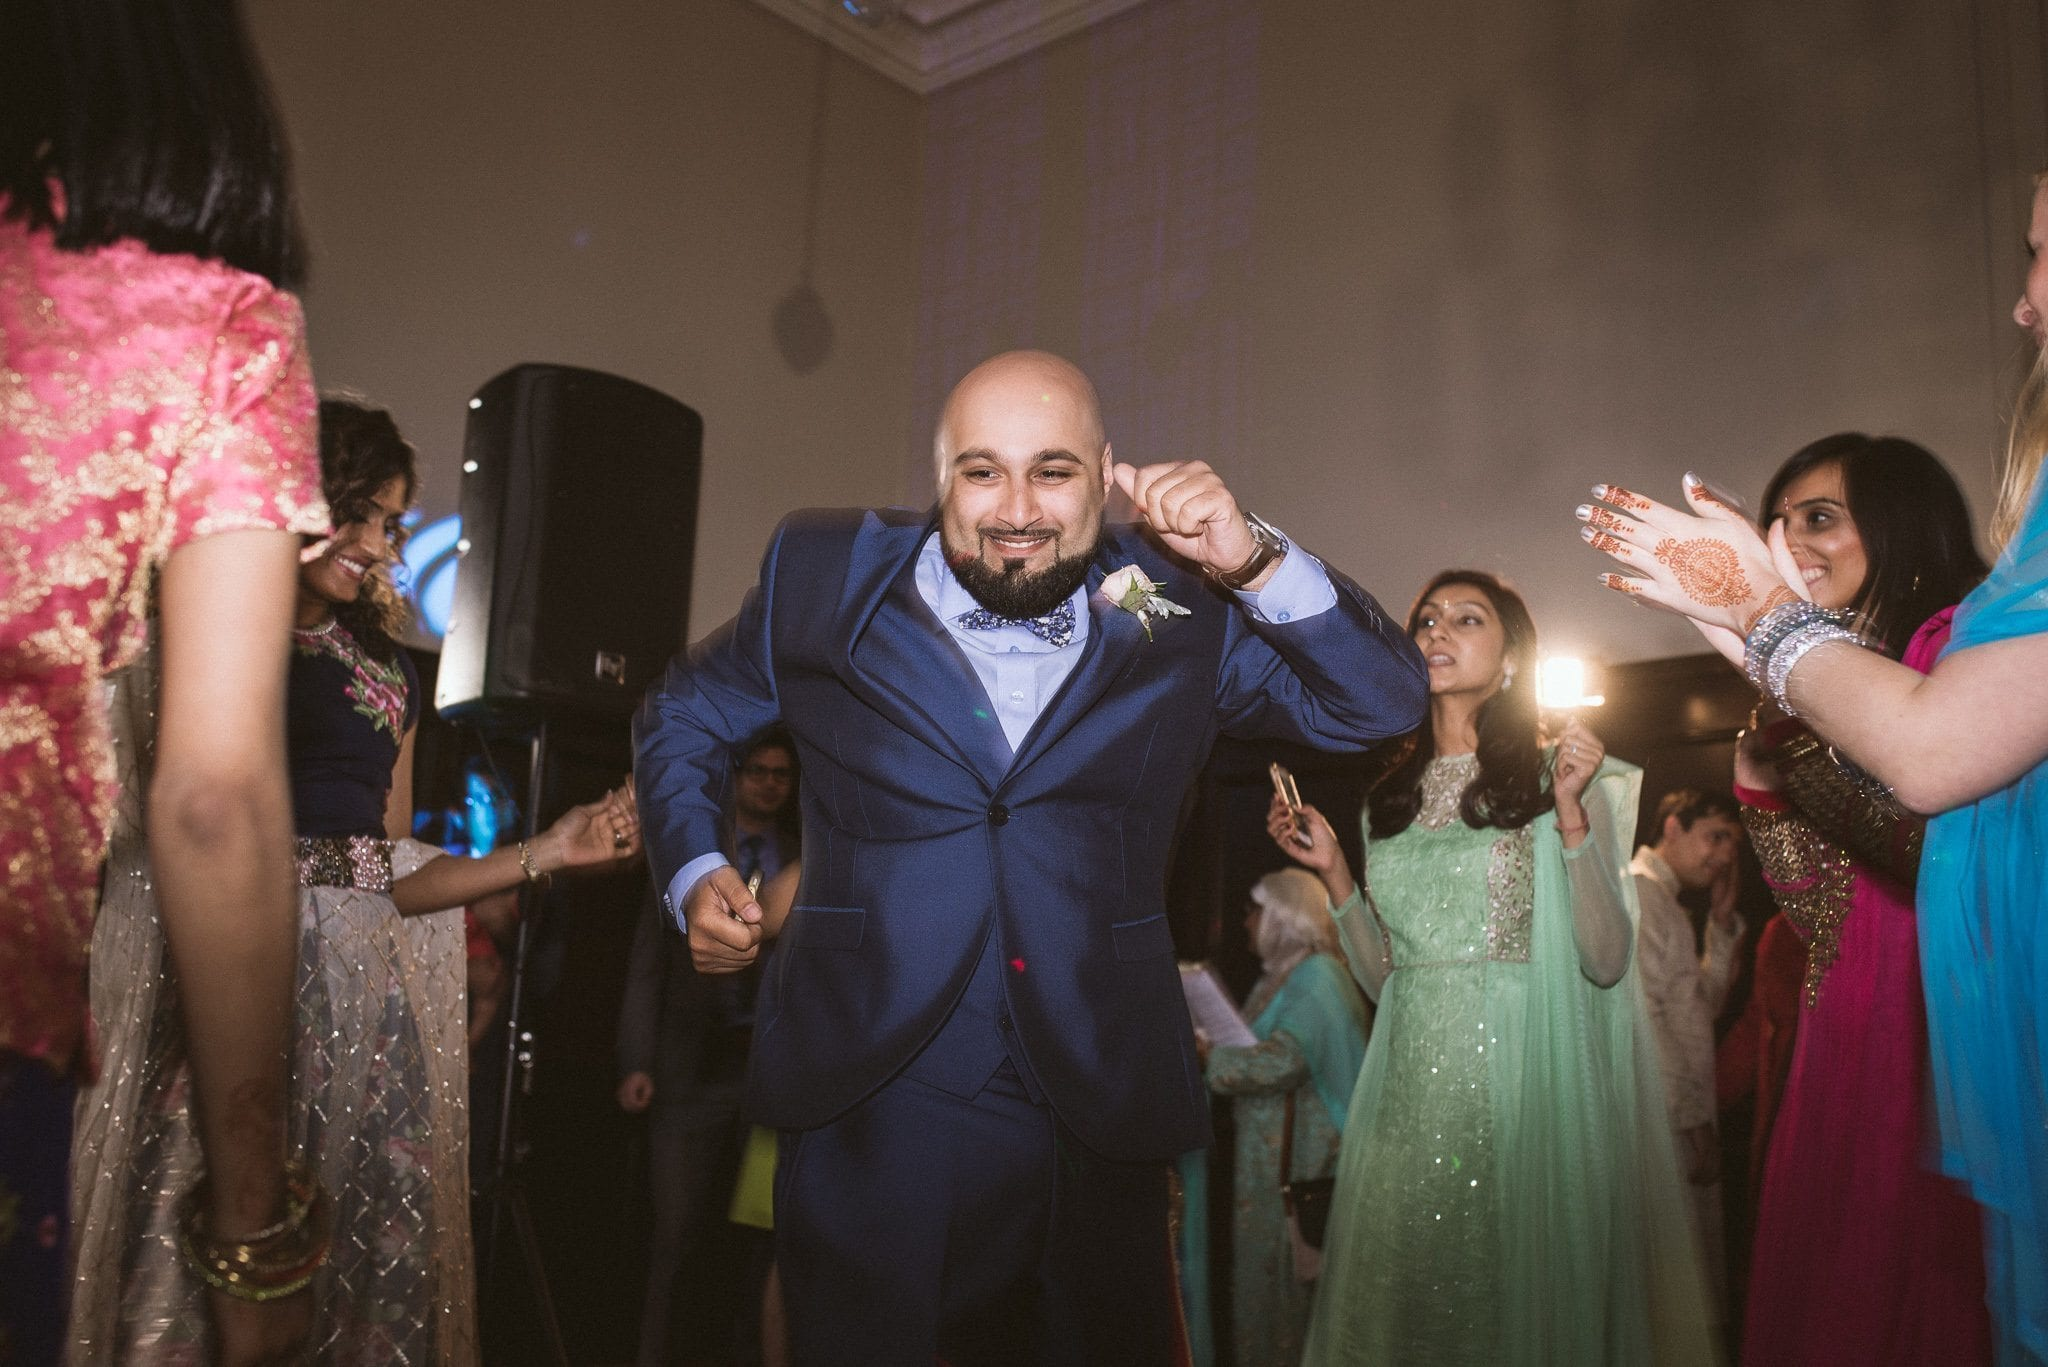 A male guest shows off some serious moves on the dancefloor at Sorayya and Usman's wedding party